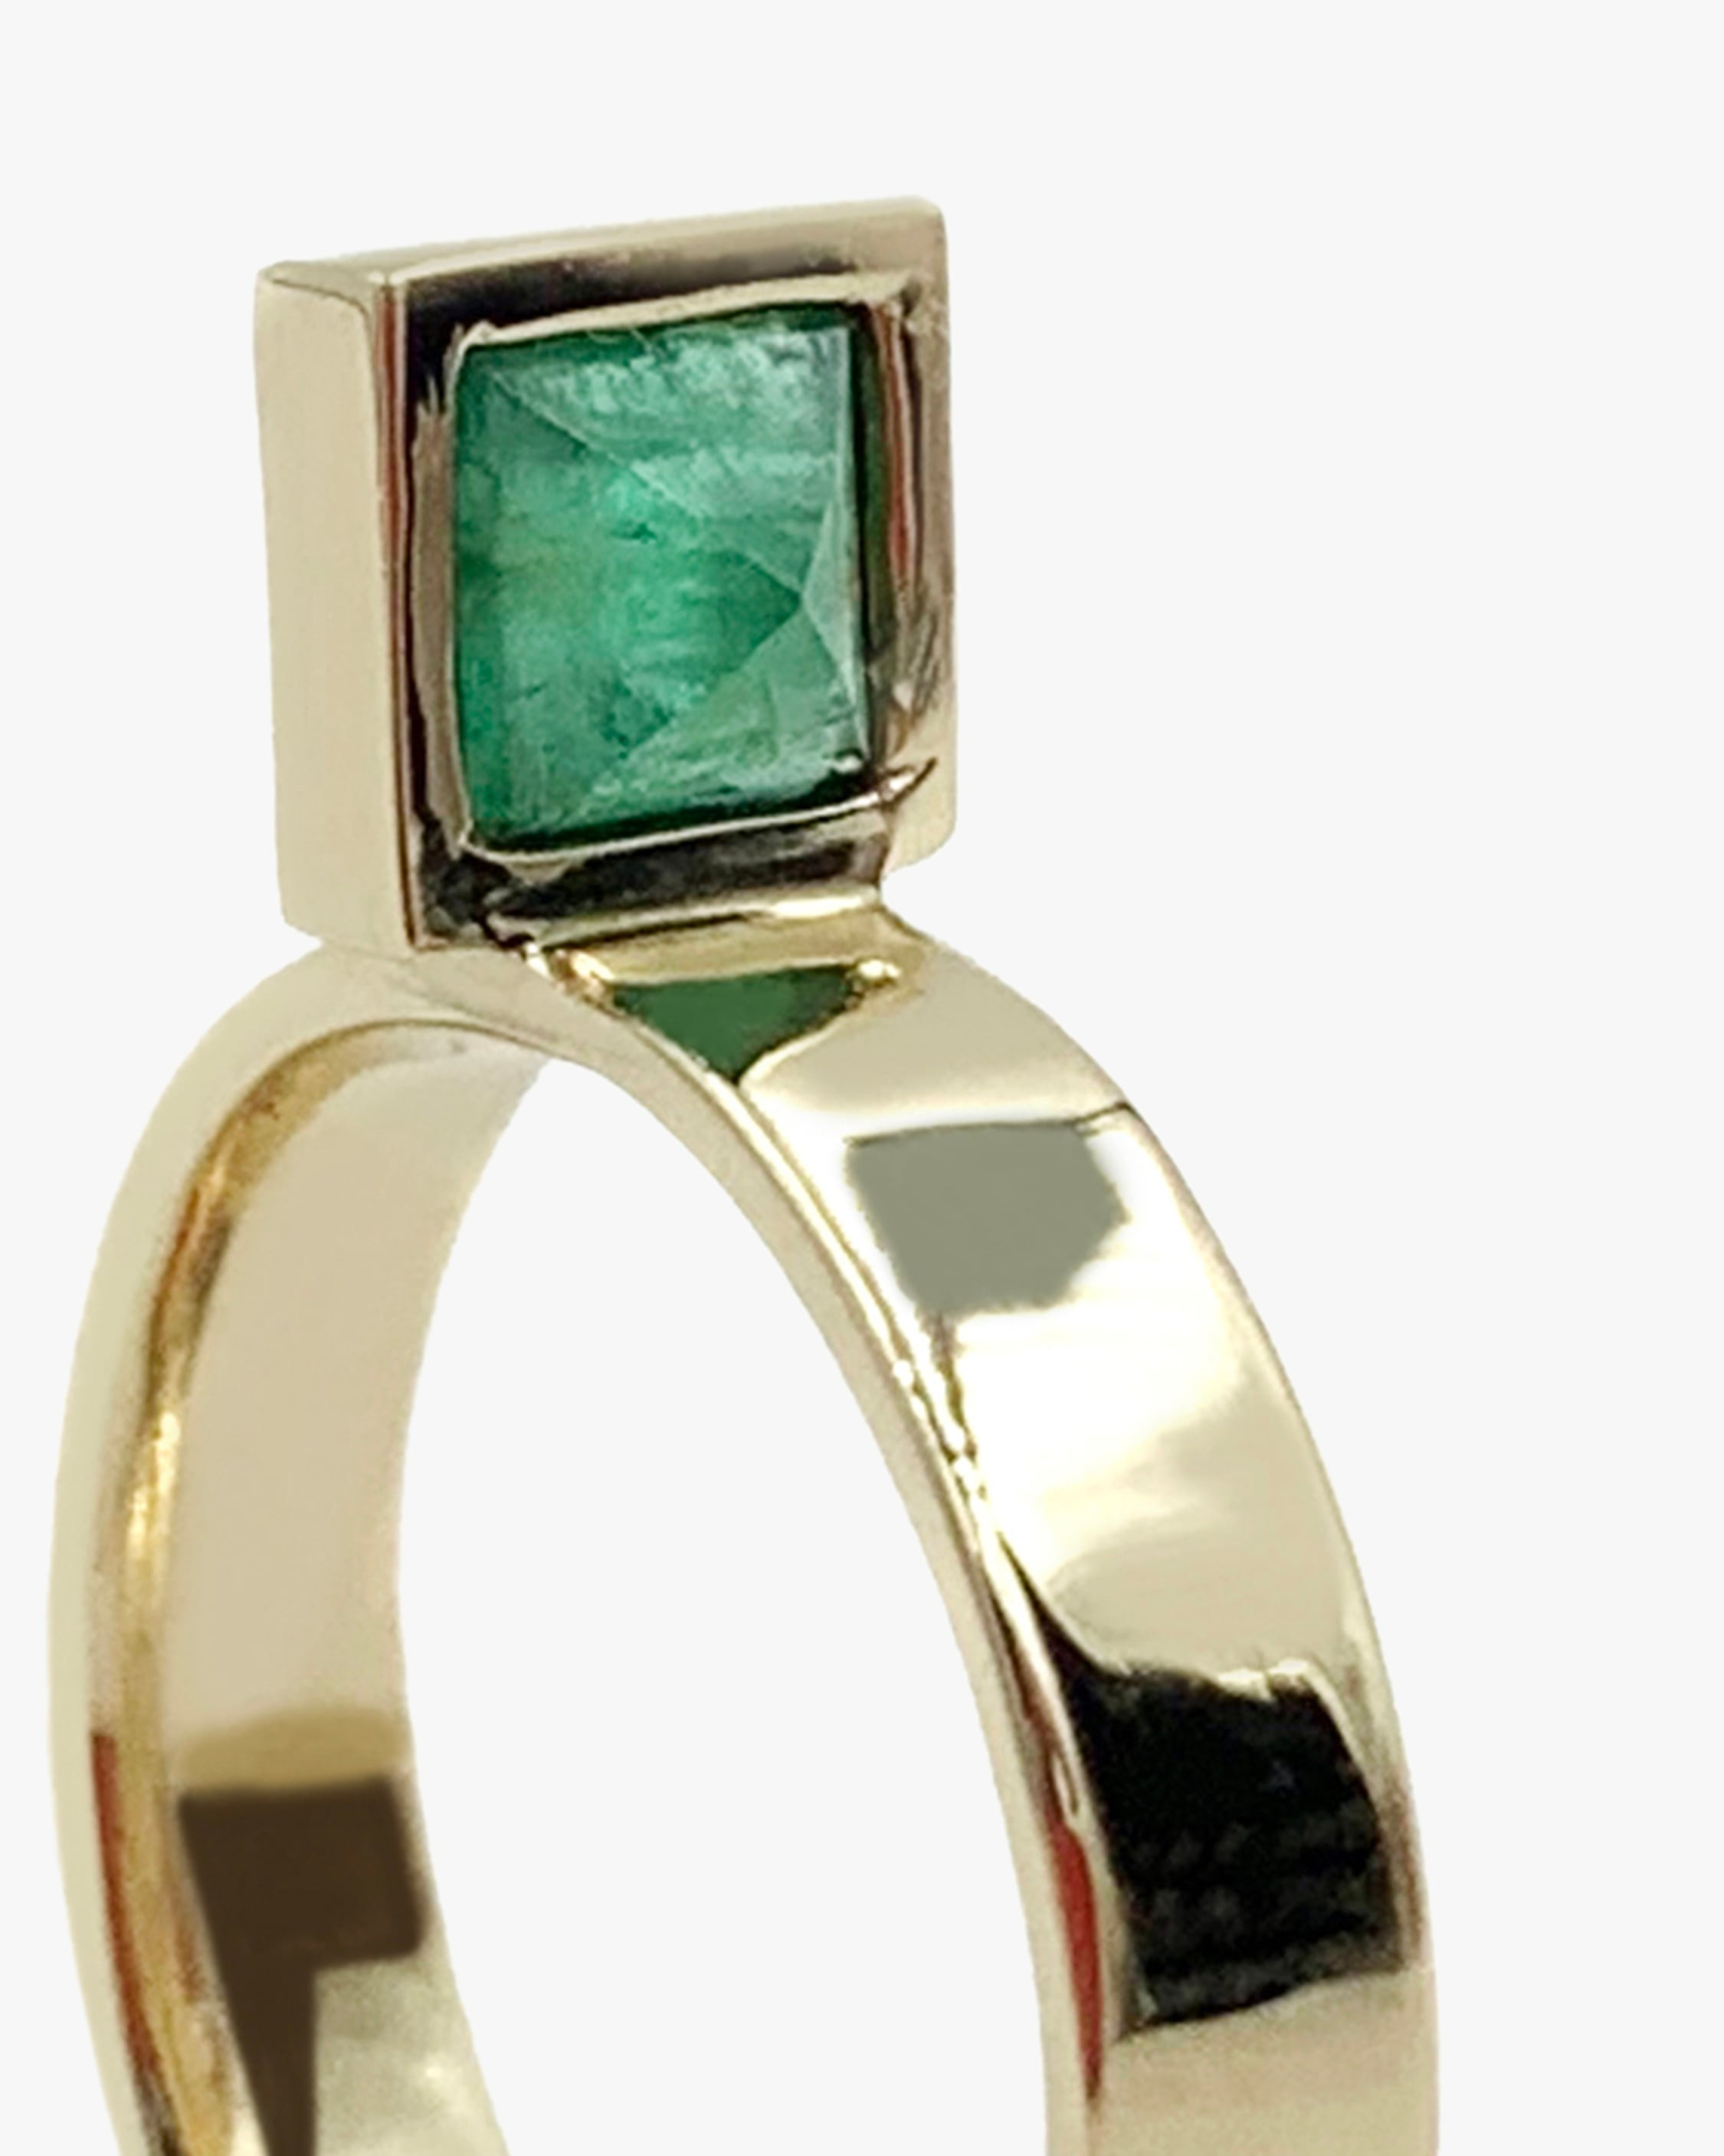 Leslie Paige Emerald Perched Ring 2